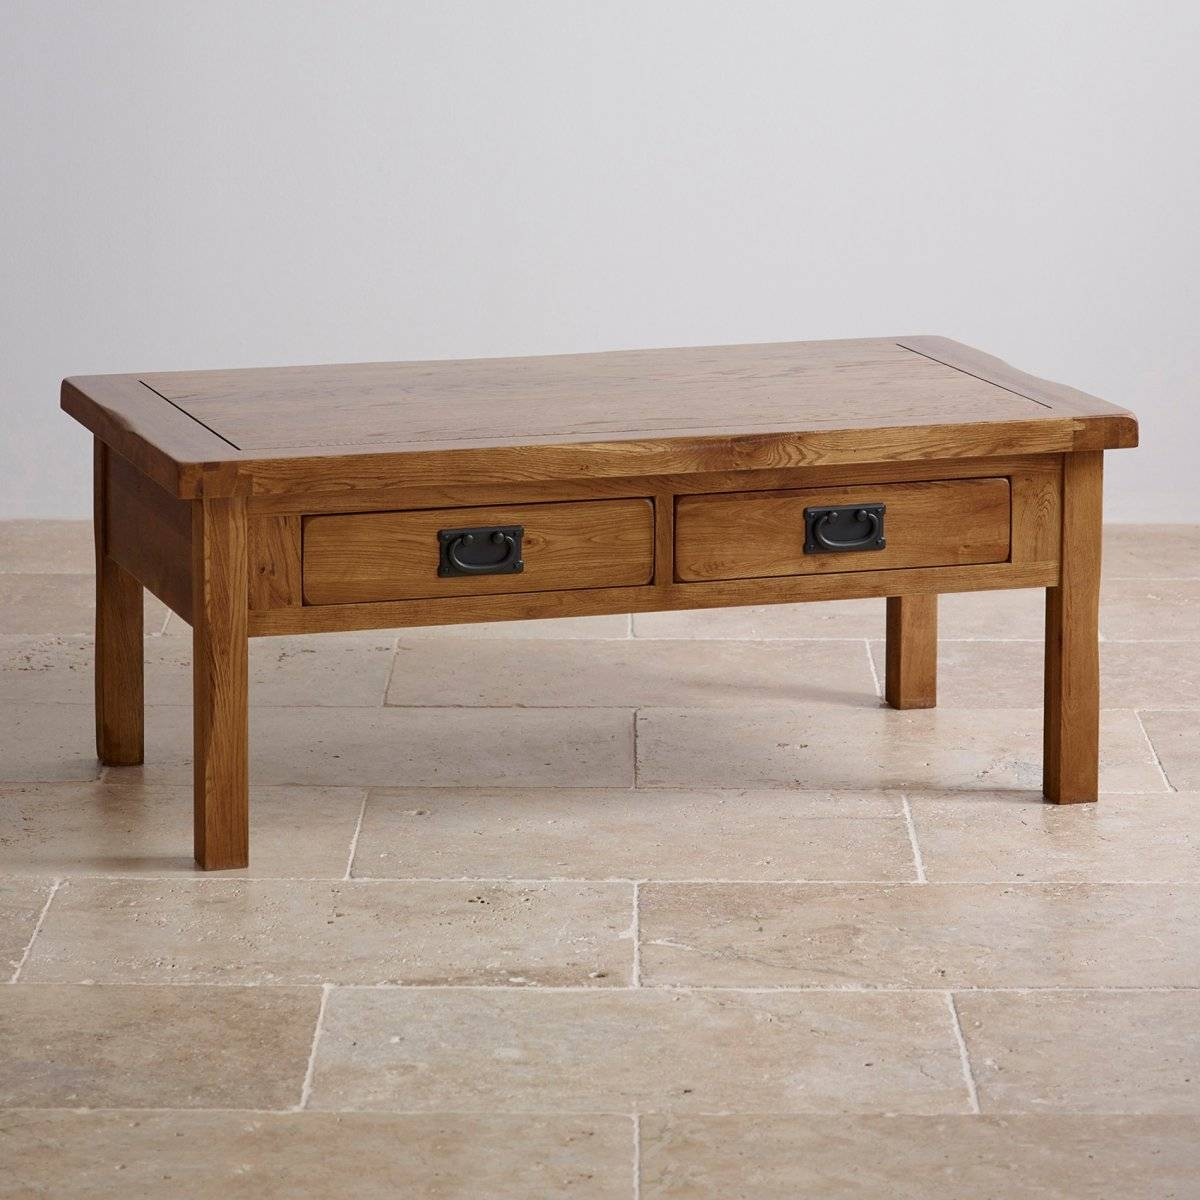 Original Rustic 4 Drawer Coffee Table In Solid Oak regarding Oak Wood Coffee Tables (Image 11 of 15)